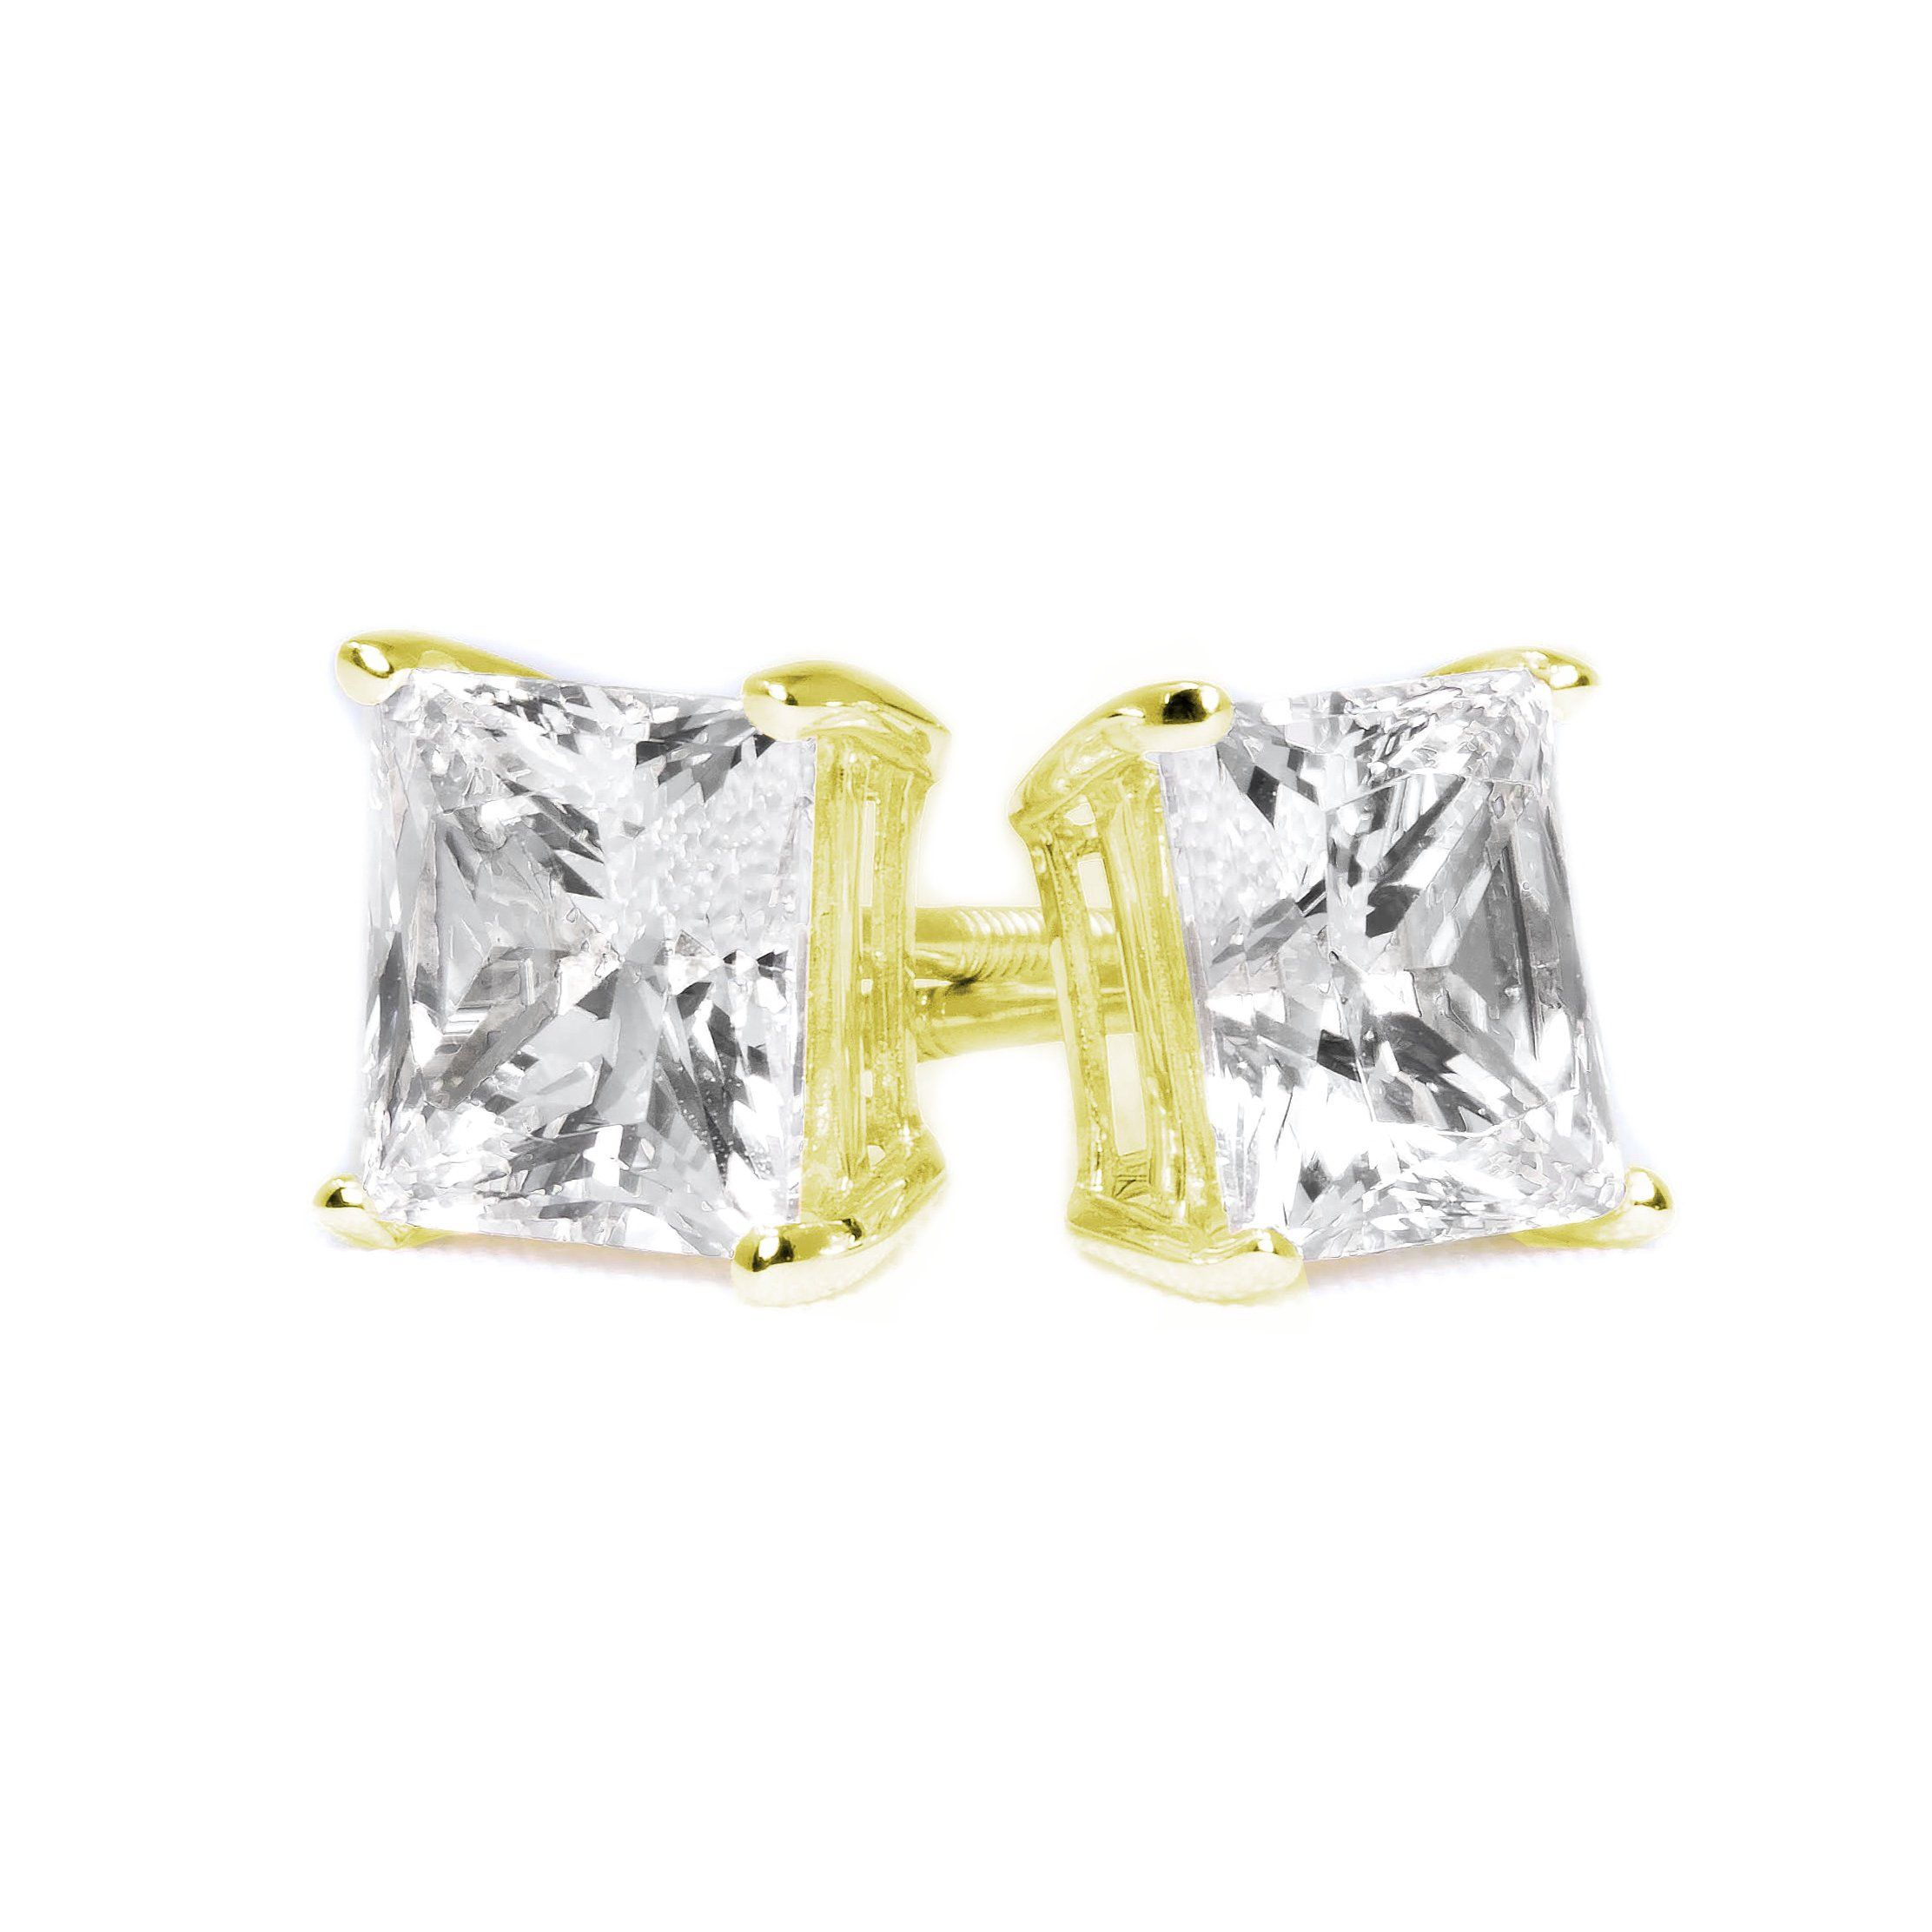 b7273e3fe 4 Ct Princess Cut Diamond Earrings in Solid 14k 18k Yellow Gold Screw Back  Studs